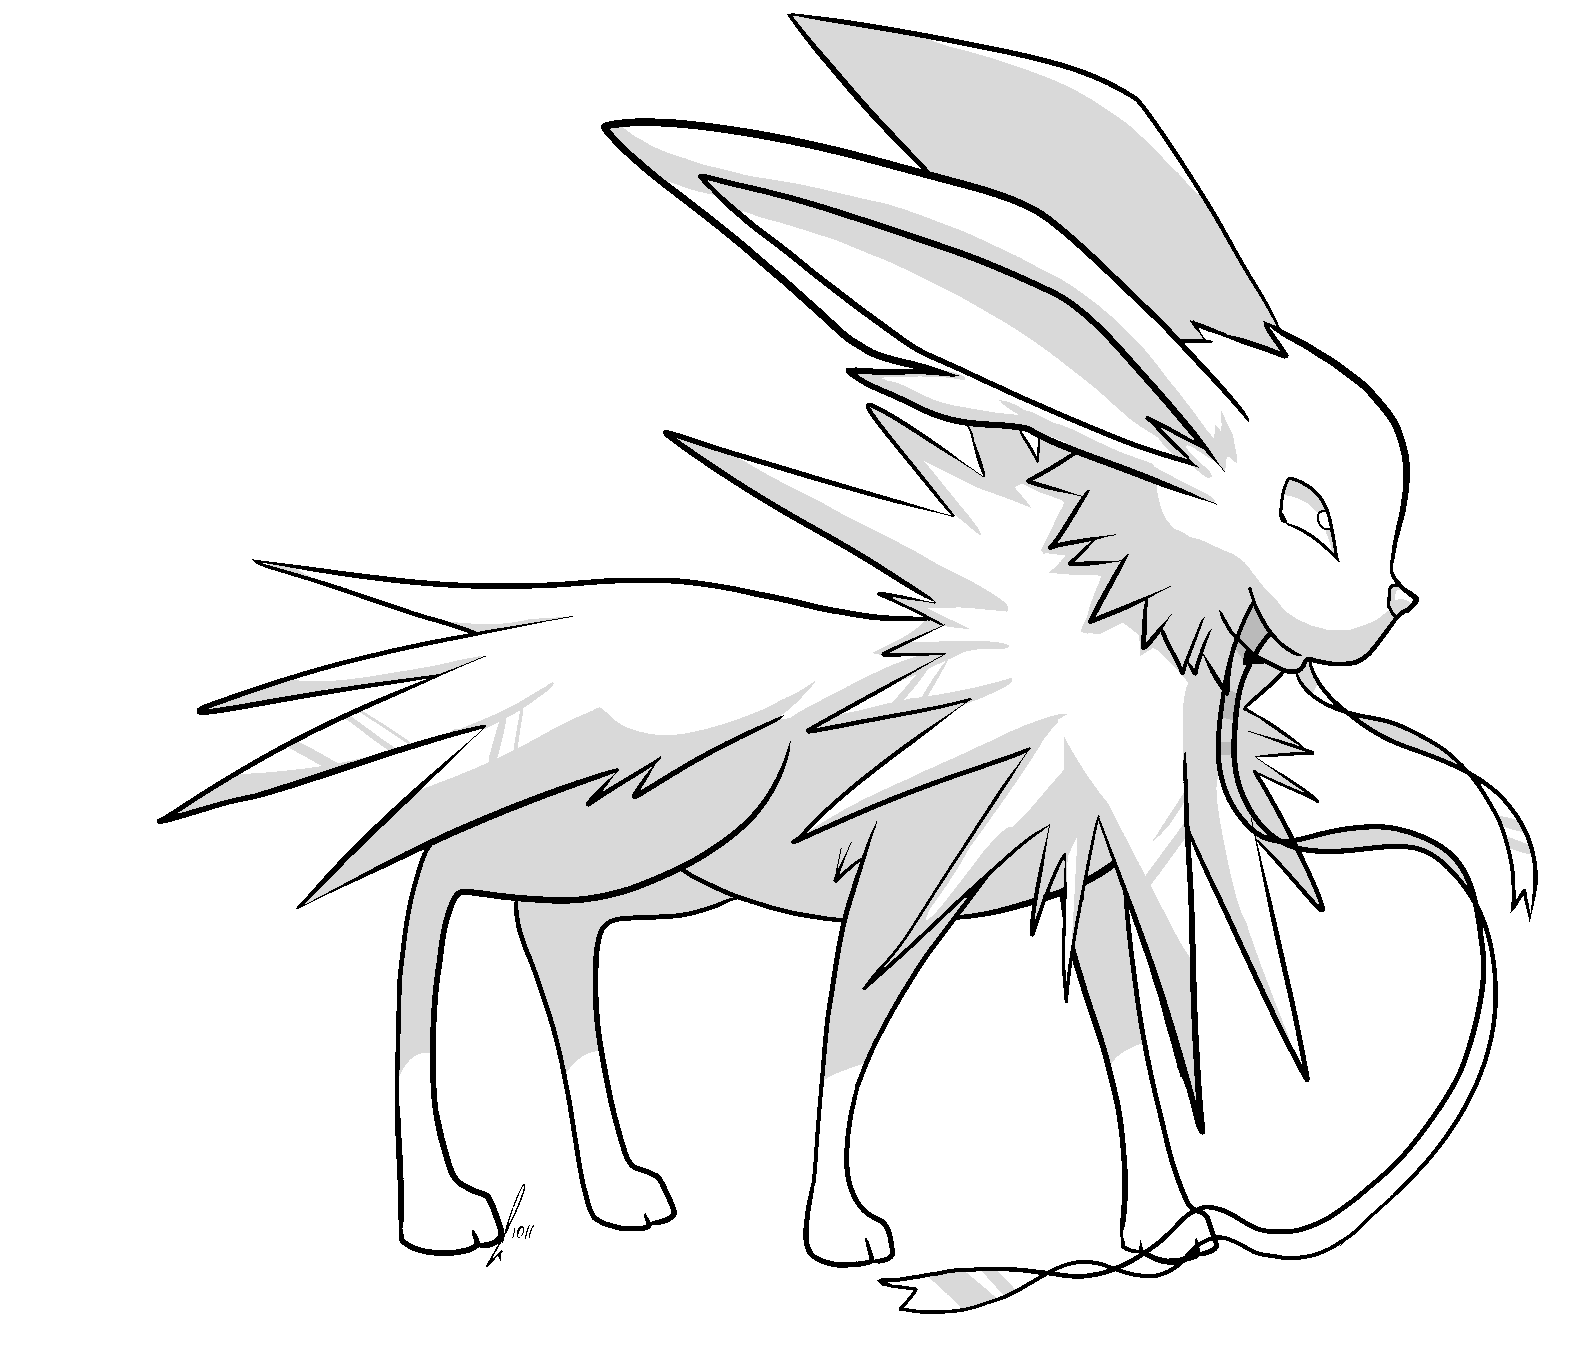 Uncategorized Jolteon Coloring Pages jolteon with ribbon lines by jaclynonacloudlines on deviantart jaclynonacloudlines